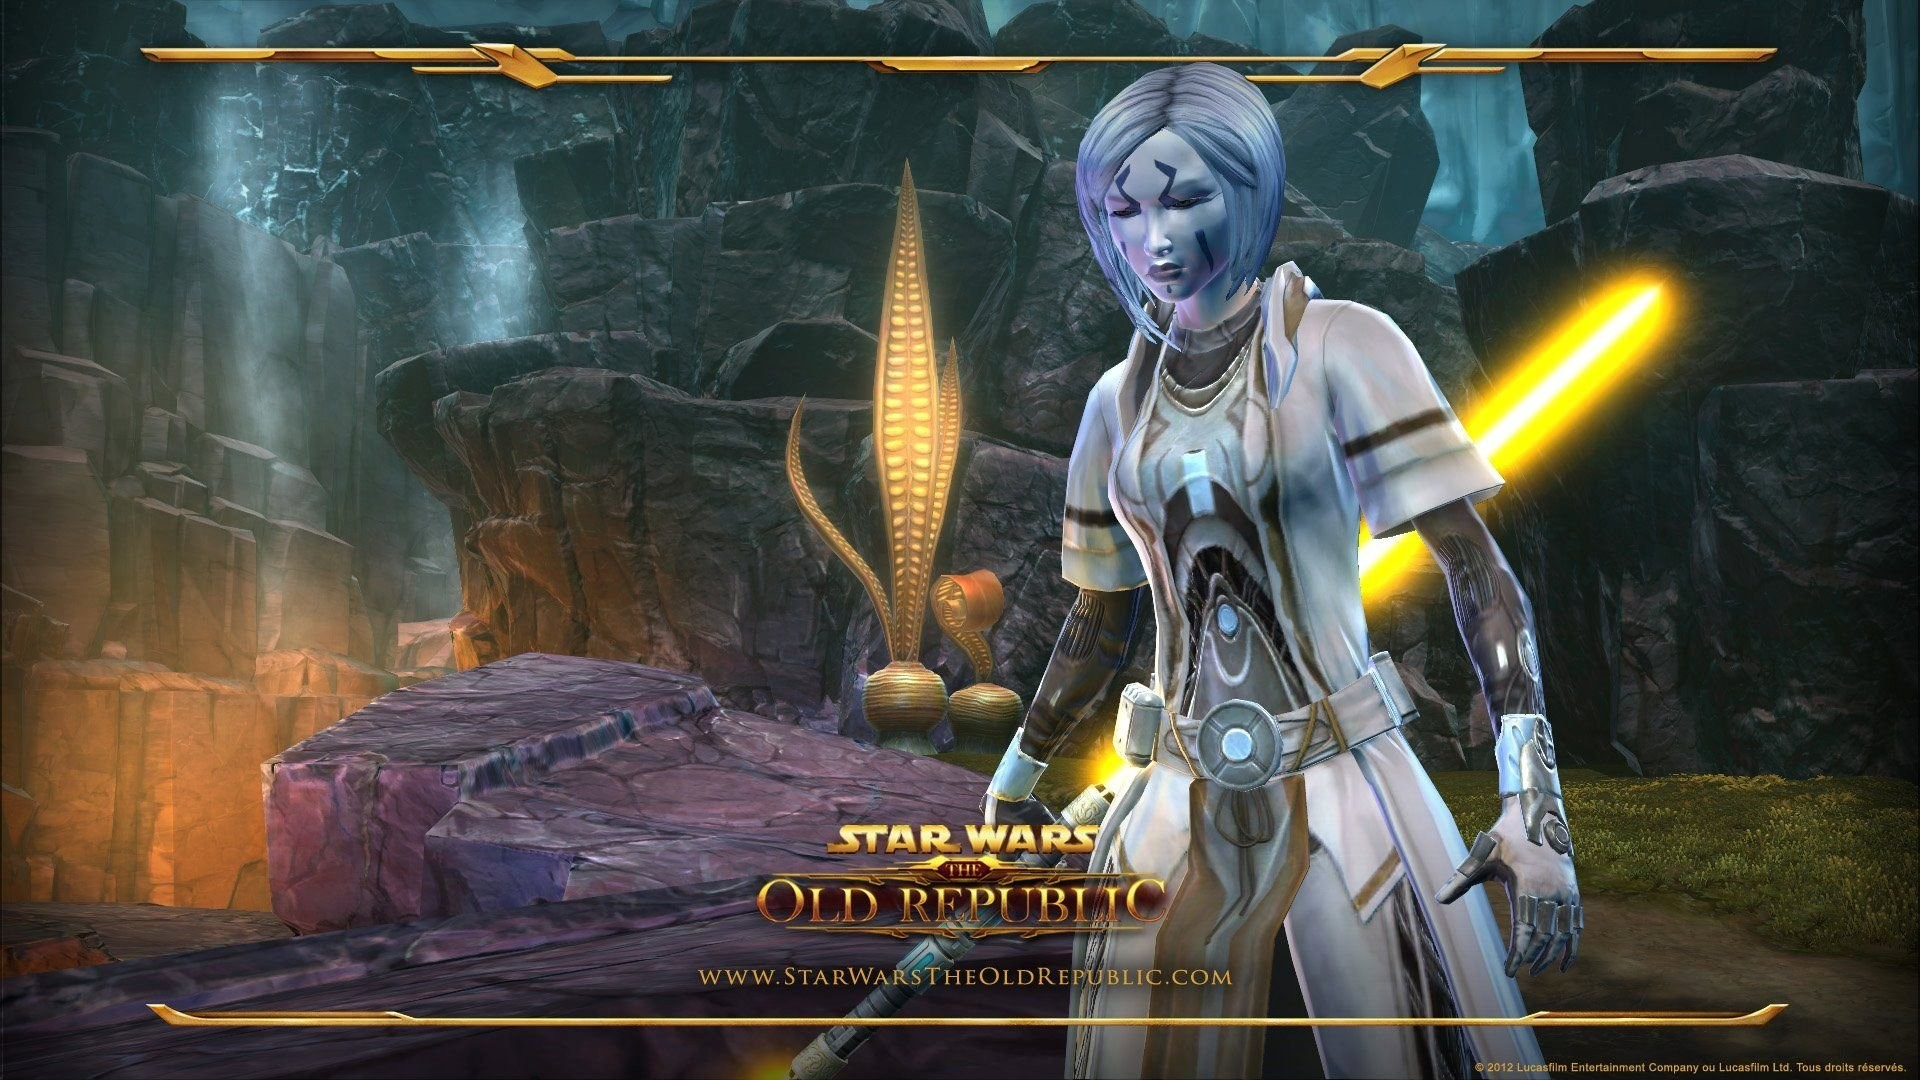 Star Wars The Old Republic Wallpaper 72 Images